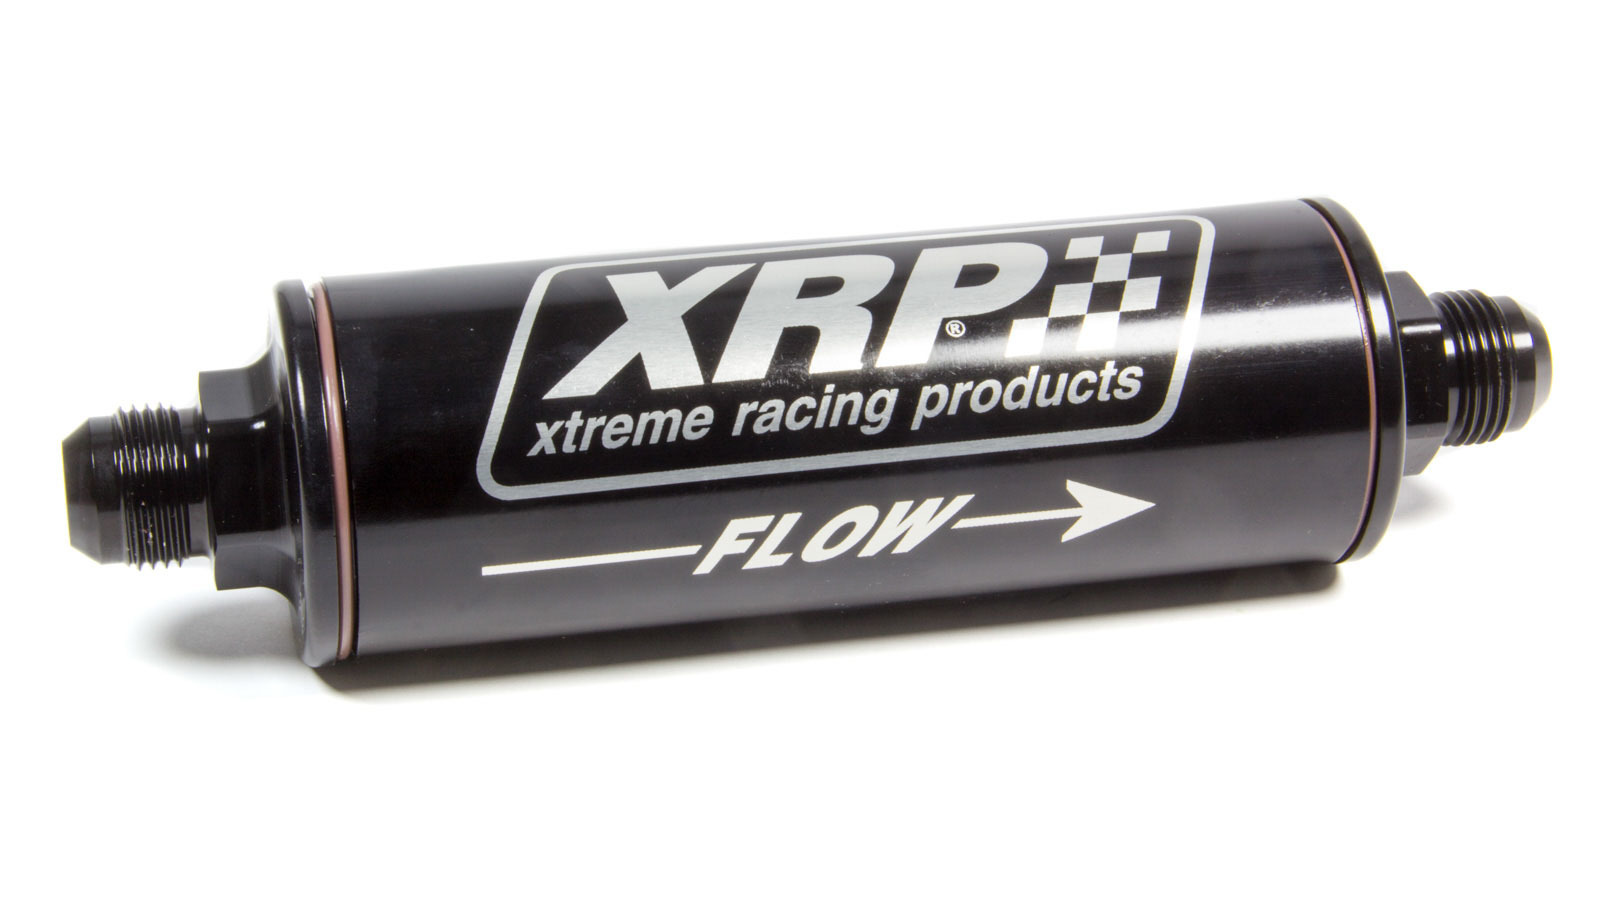 XRP 7112AN Oil Filter, In-Line, 12 AN Inlet, 12 AN Outlet, 9.600 in Length, Requires Filter, Aluminum, Black Anodized, Each